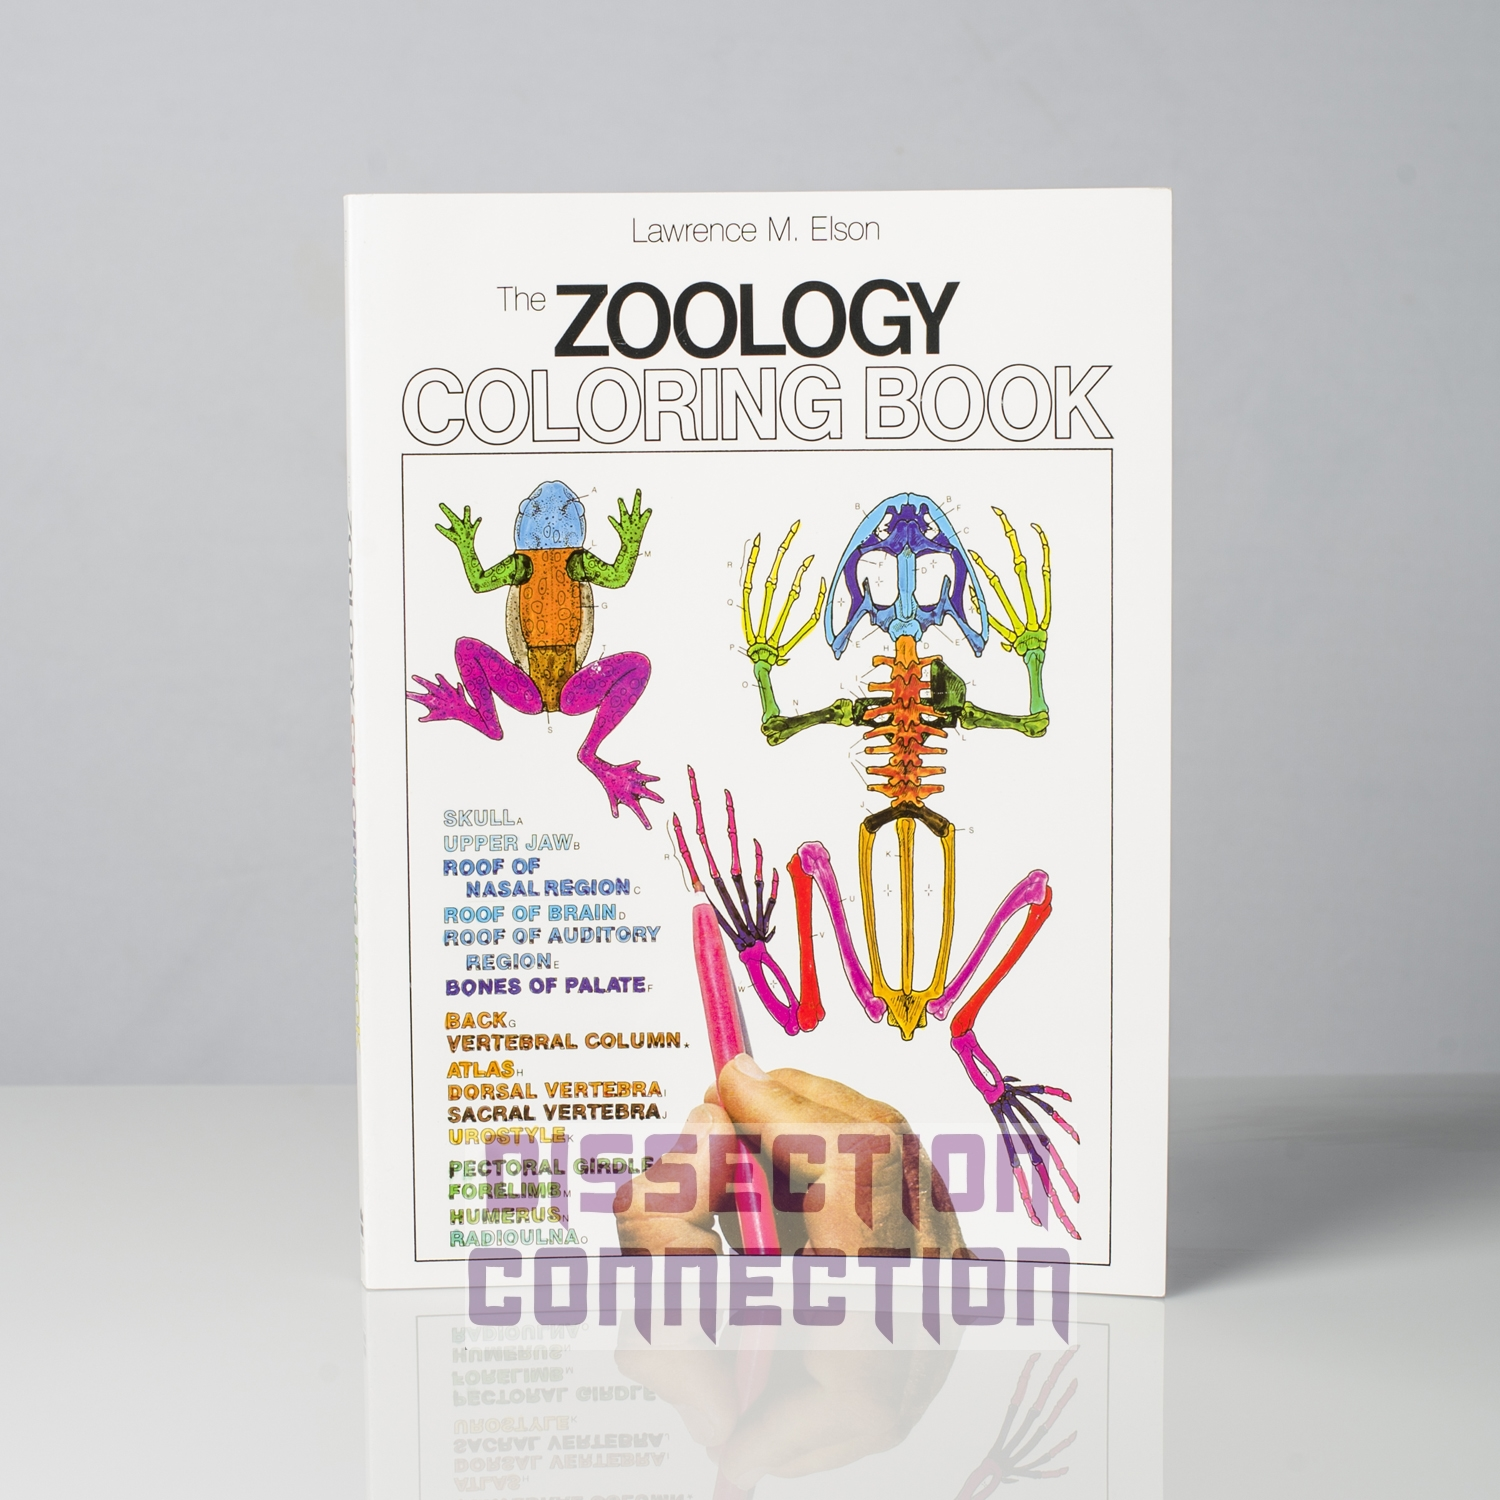 saunders veterinary anatomy colouring book dissection connection